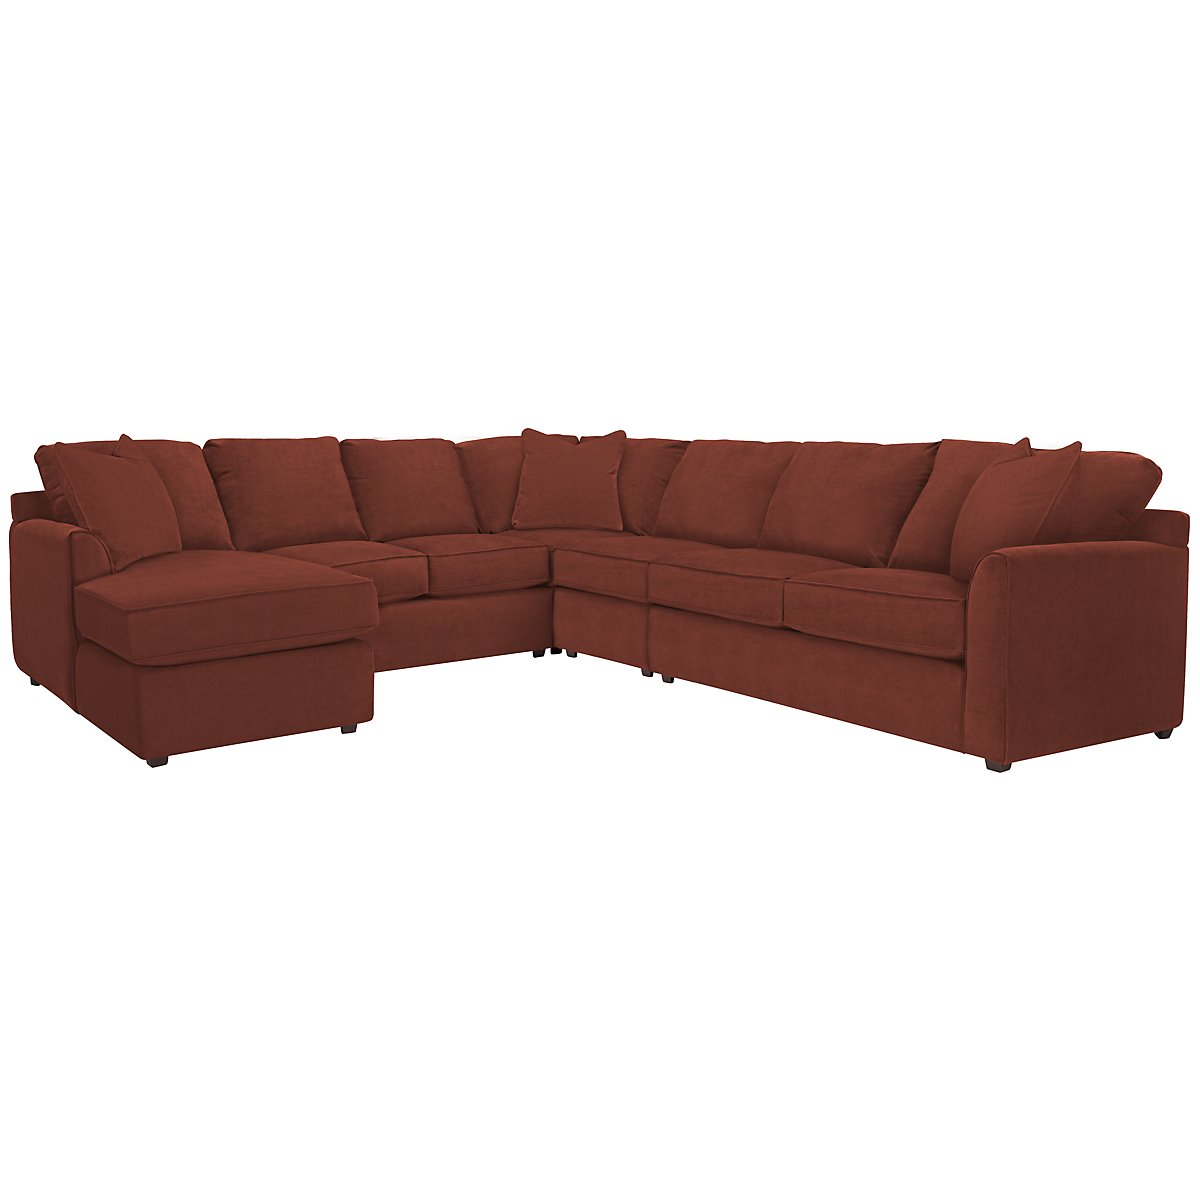 Express3 Red Microfiber Large Left Chaise Sectional